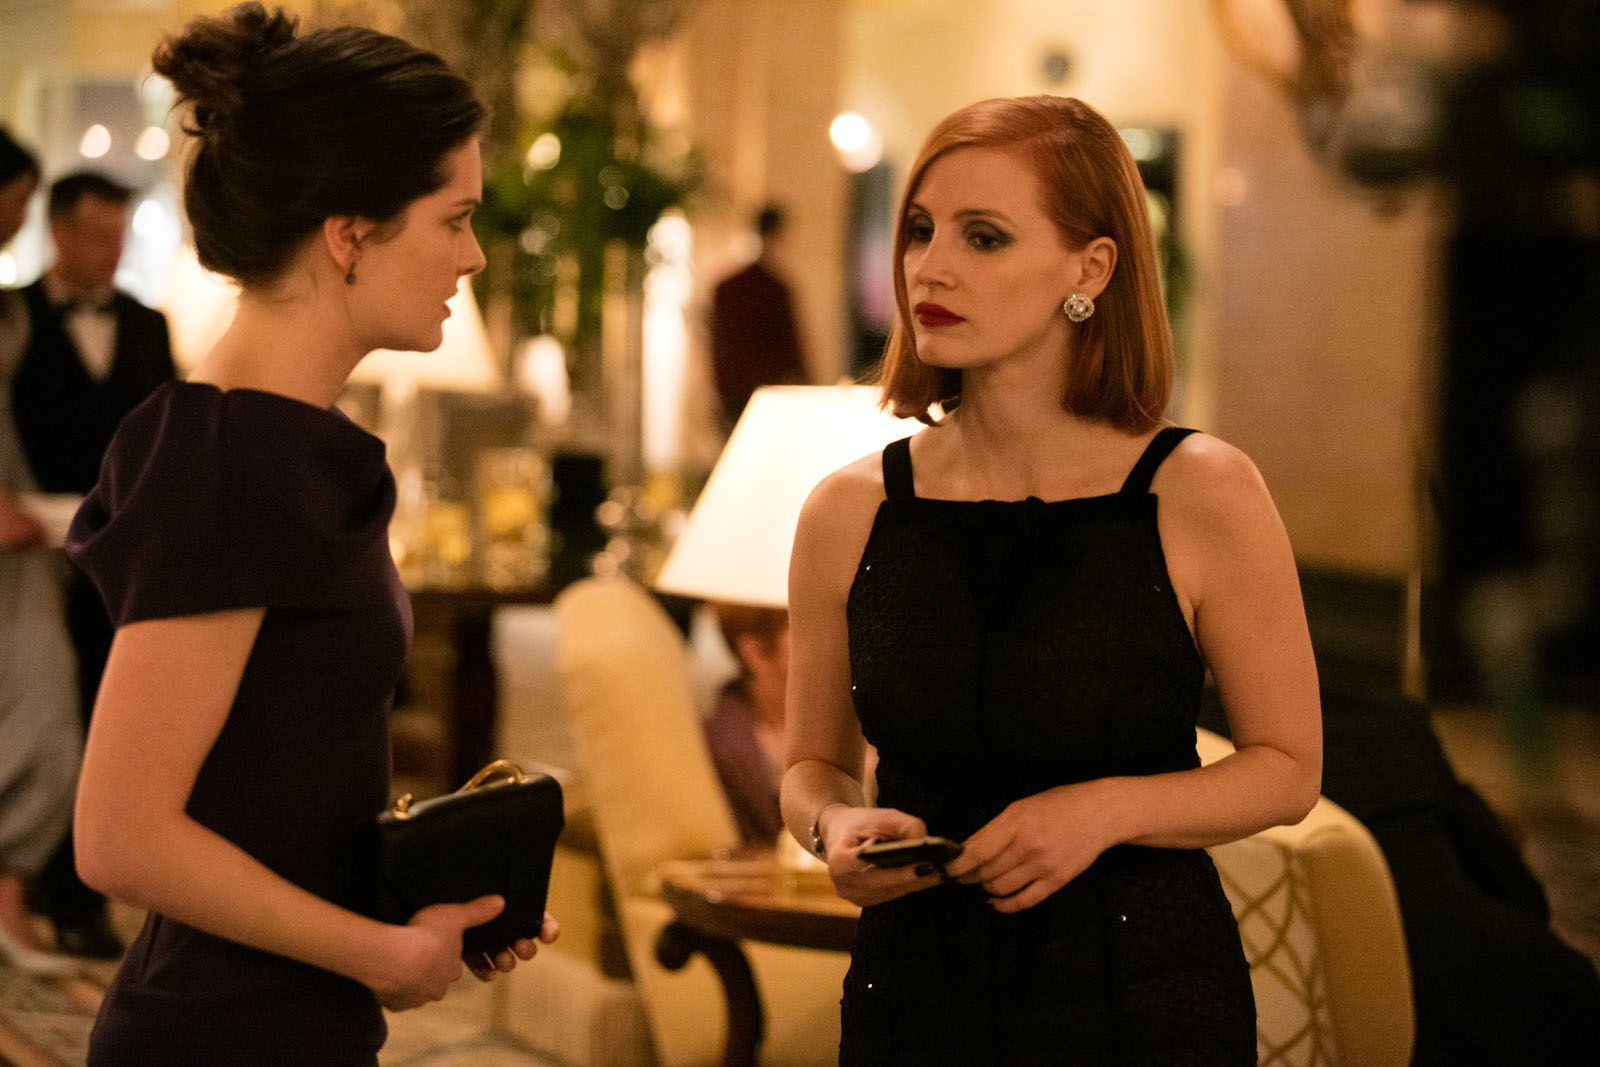 [critique] Miss Sloane : la bonne surprise